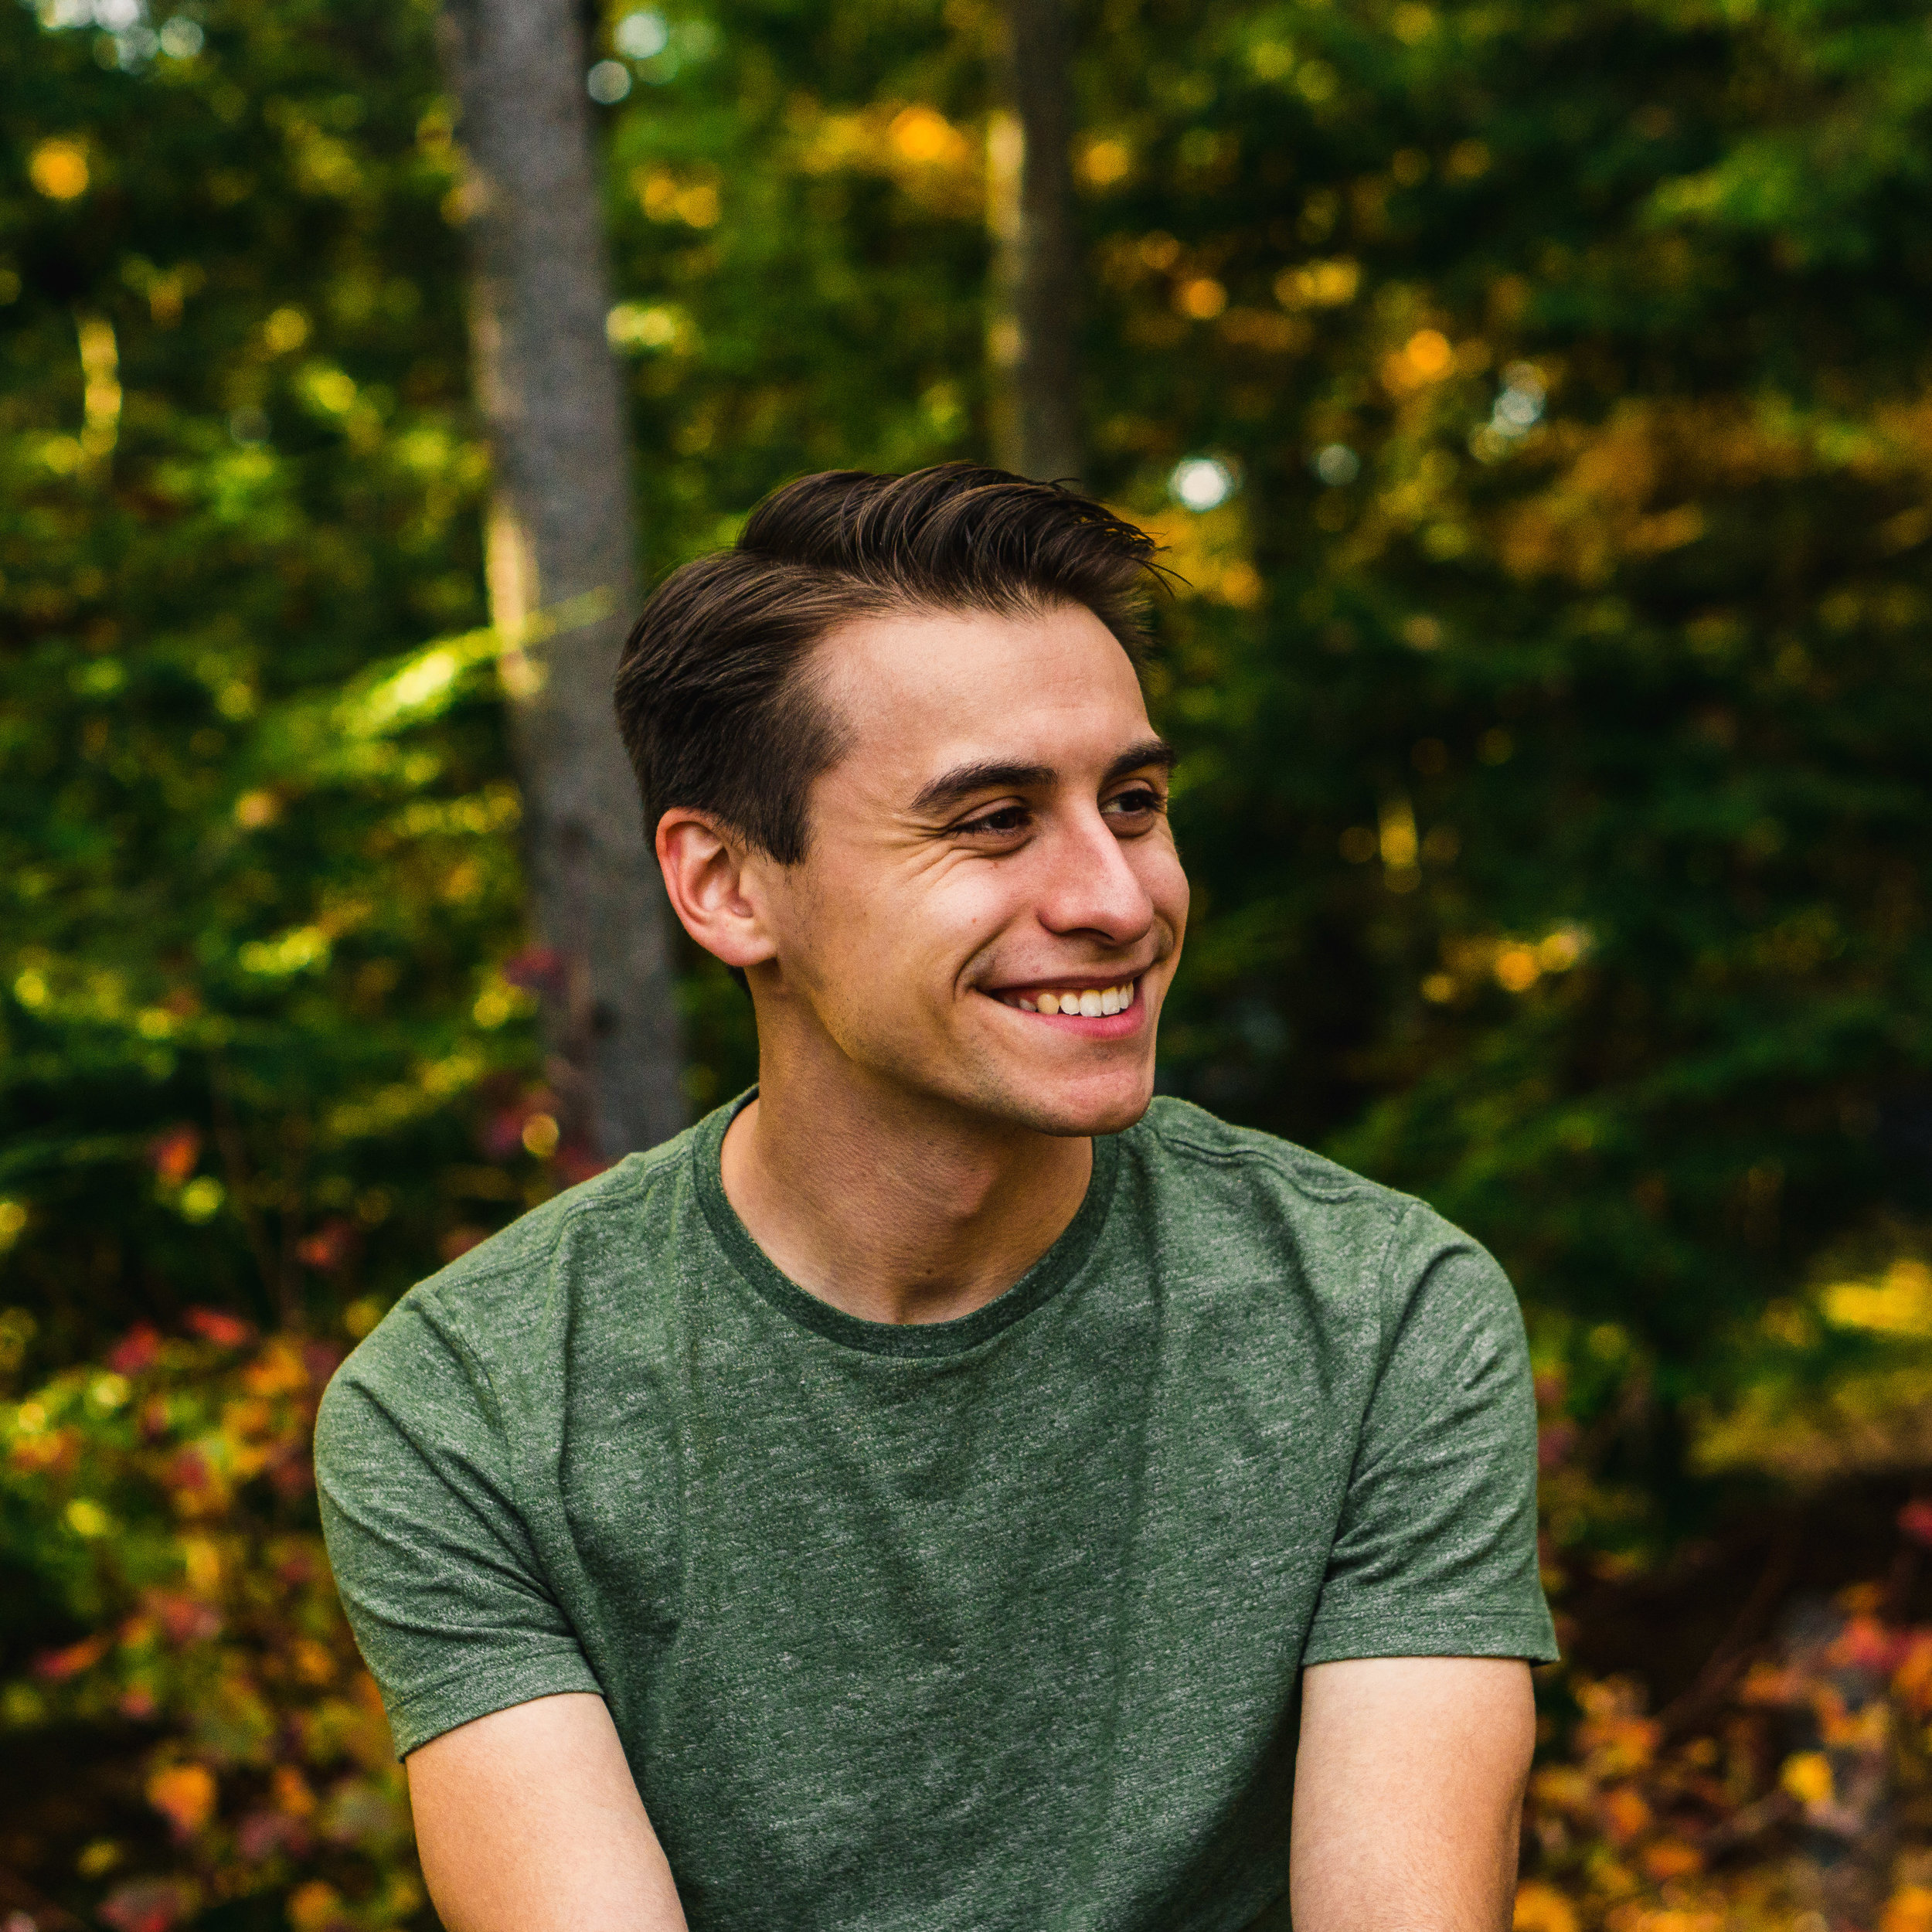 Hey, I'm Zach - Born and raised in Massachusetts, it's been over a decade since my camera became my most prized possession.Since I was a teenager, I've always been drawn to creating visuals; whether it was making movies with my friends or taking photos of the trees and hills on a hike.After realizing my passion for photo and video, I studied visual media production to hone my creative eye and storytelling skills. From there, I've worked with companies across different industries, and people across different parts of the country, for both artistic and commercial purposes.